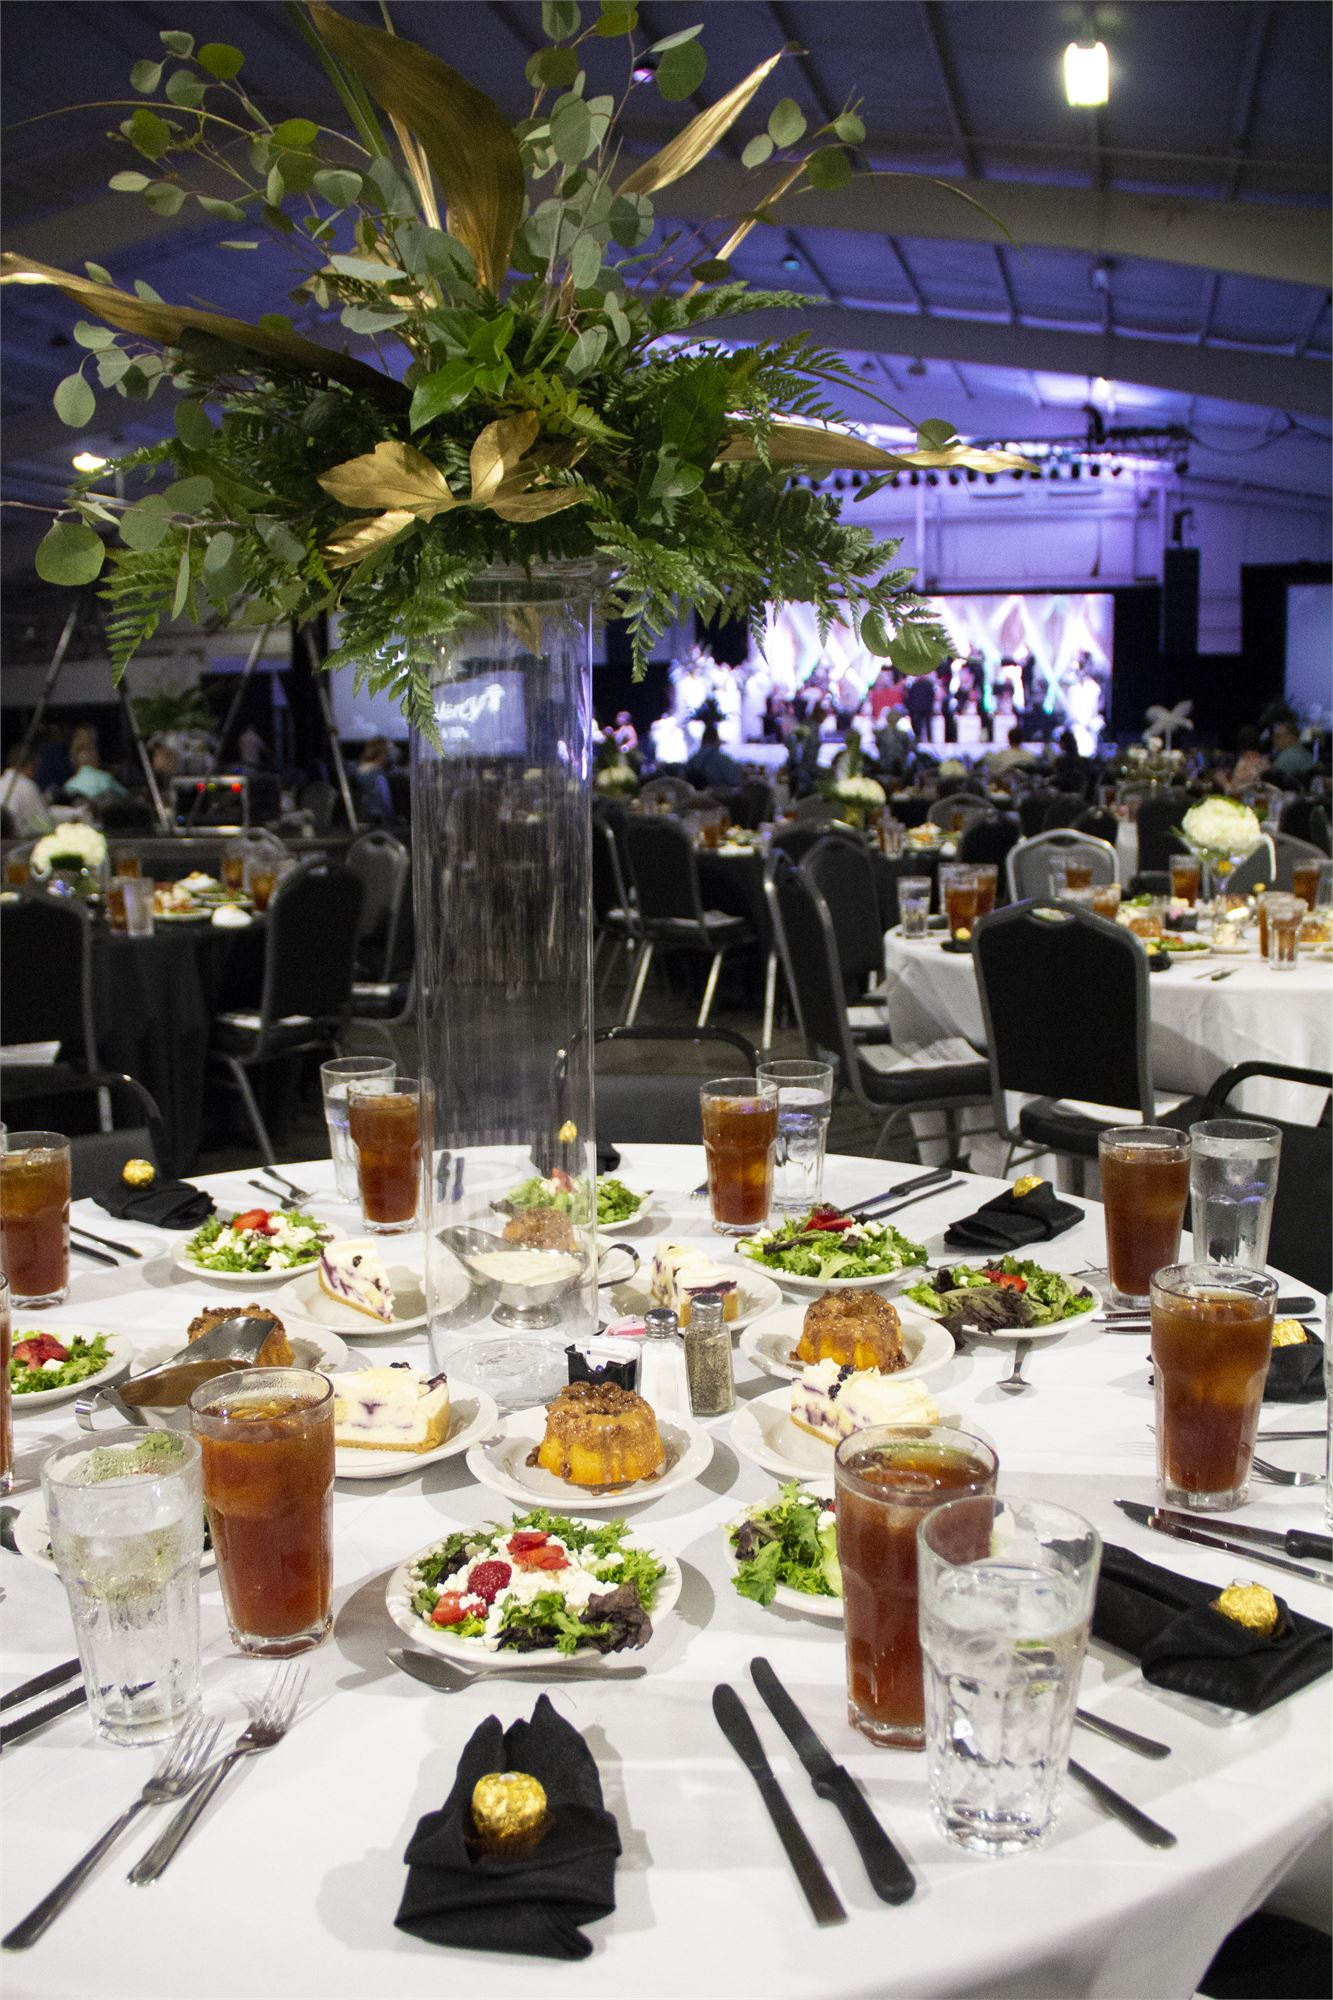 Inside E*Plex Hall with over 150 round tables set up with large flower arrangements. In the background is a large screen and stage.